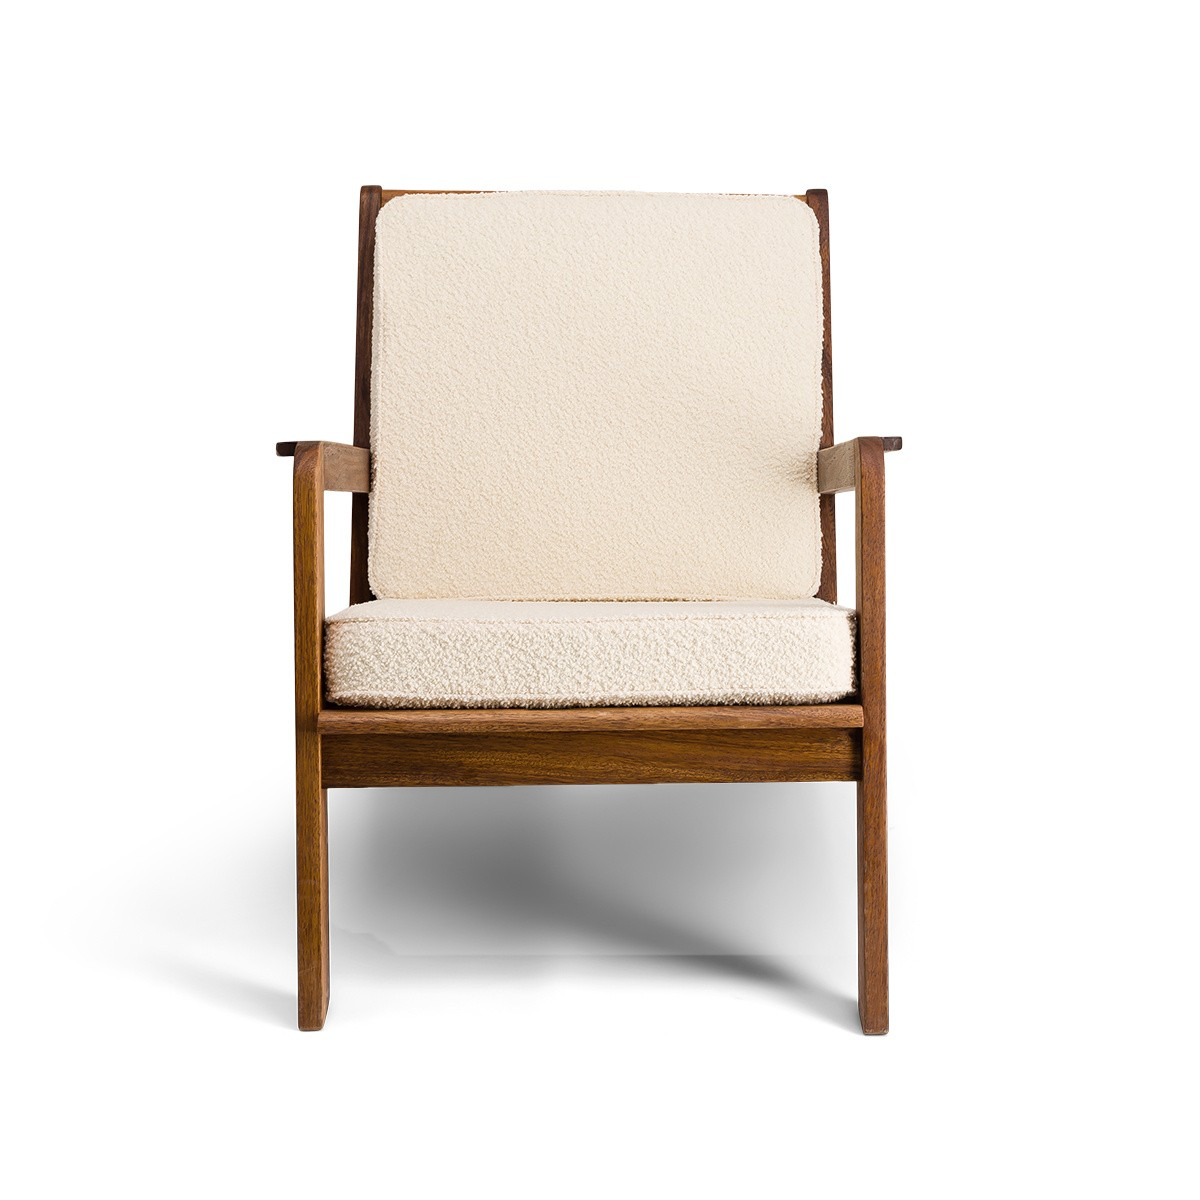 Gloria Fireside Chair in Brown Wood with White Curly Wool